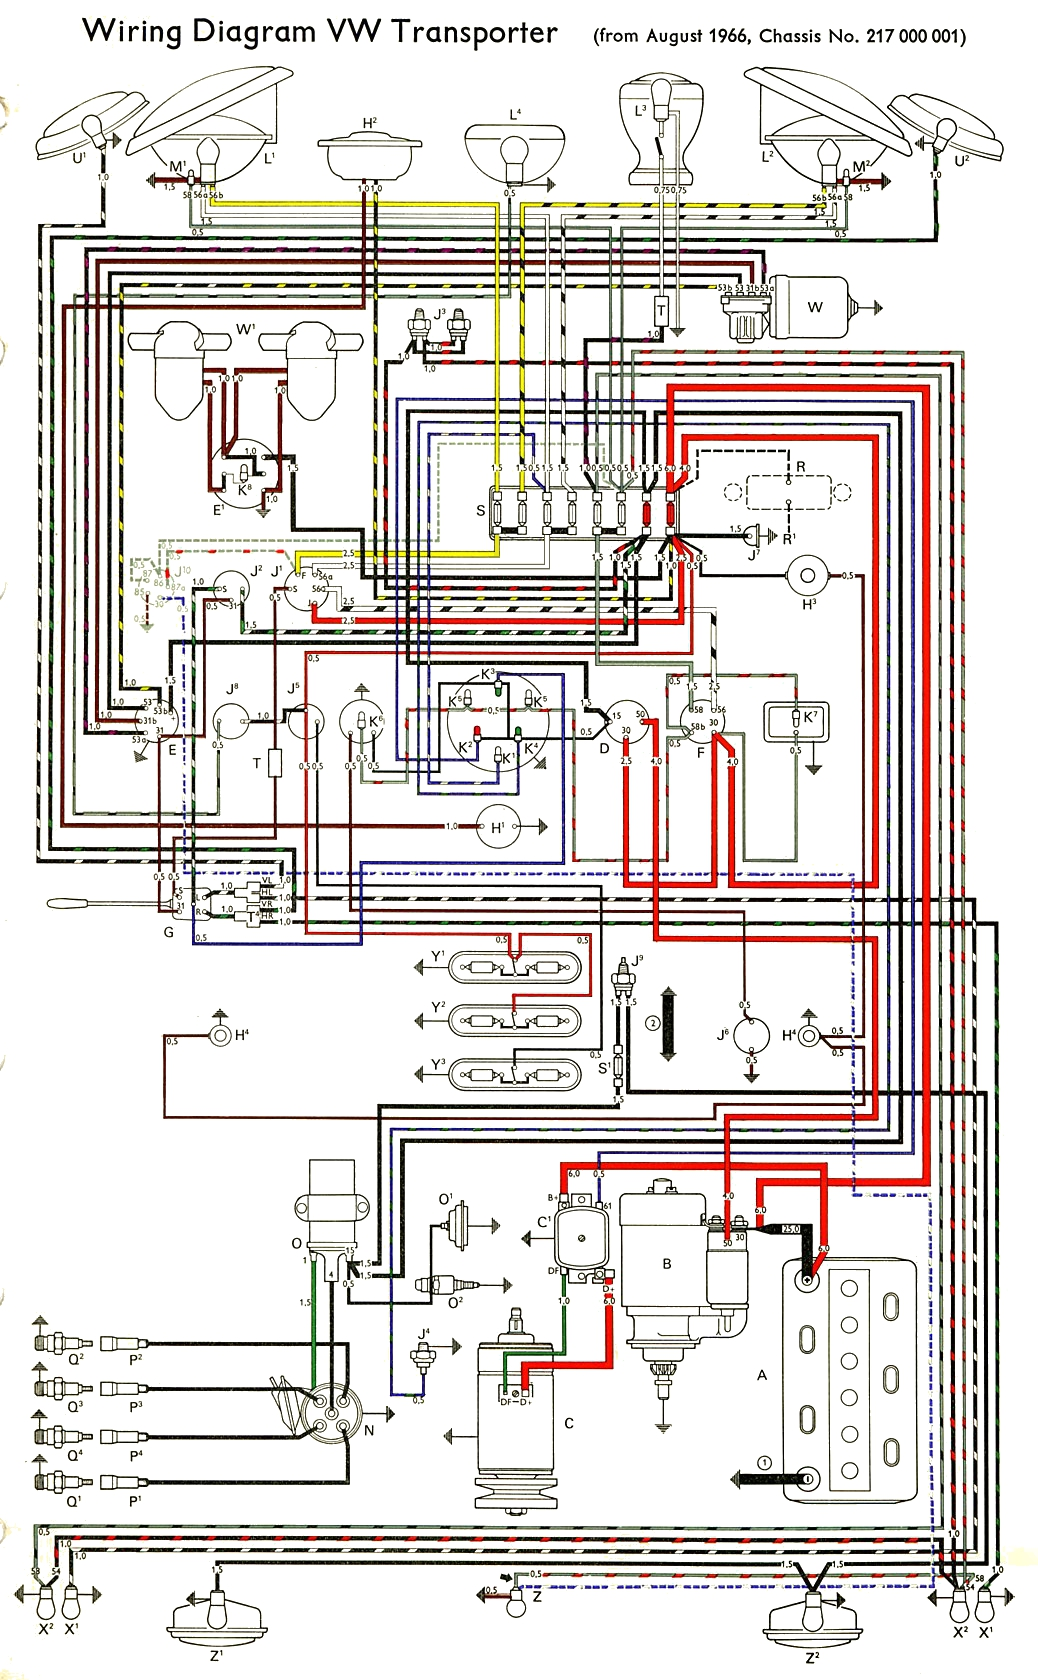 2009 pt cruiser wire schematic thesamba.com :: type 2 wiring diagrams #4